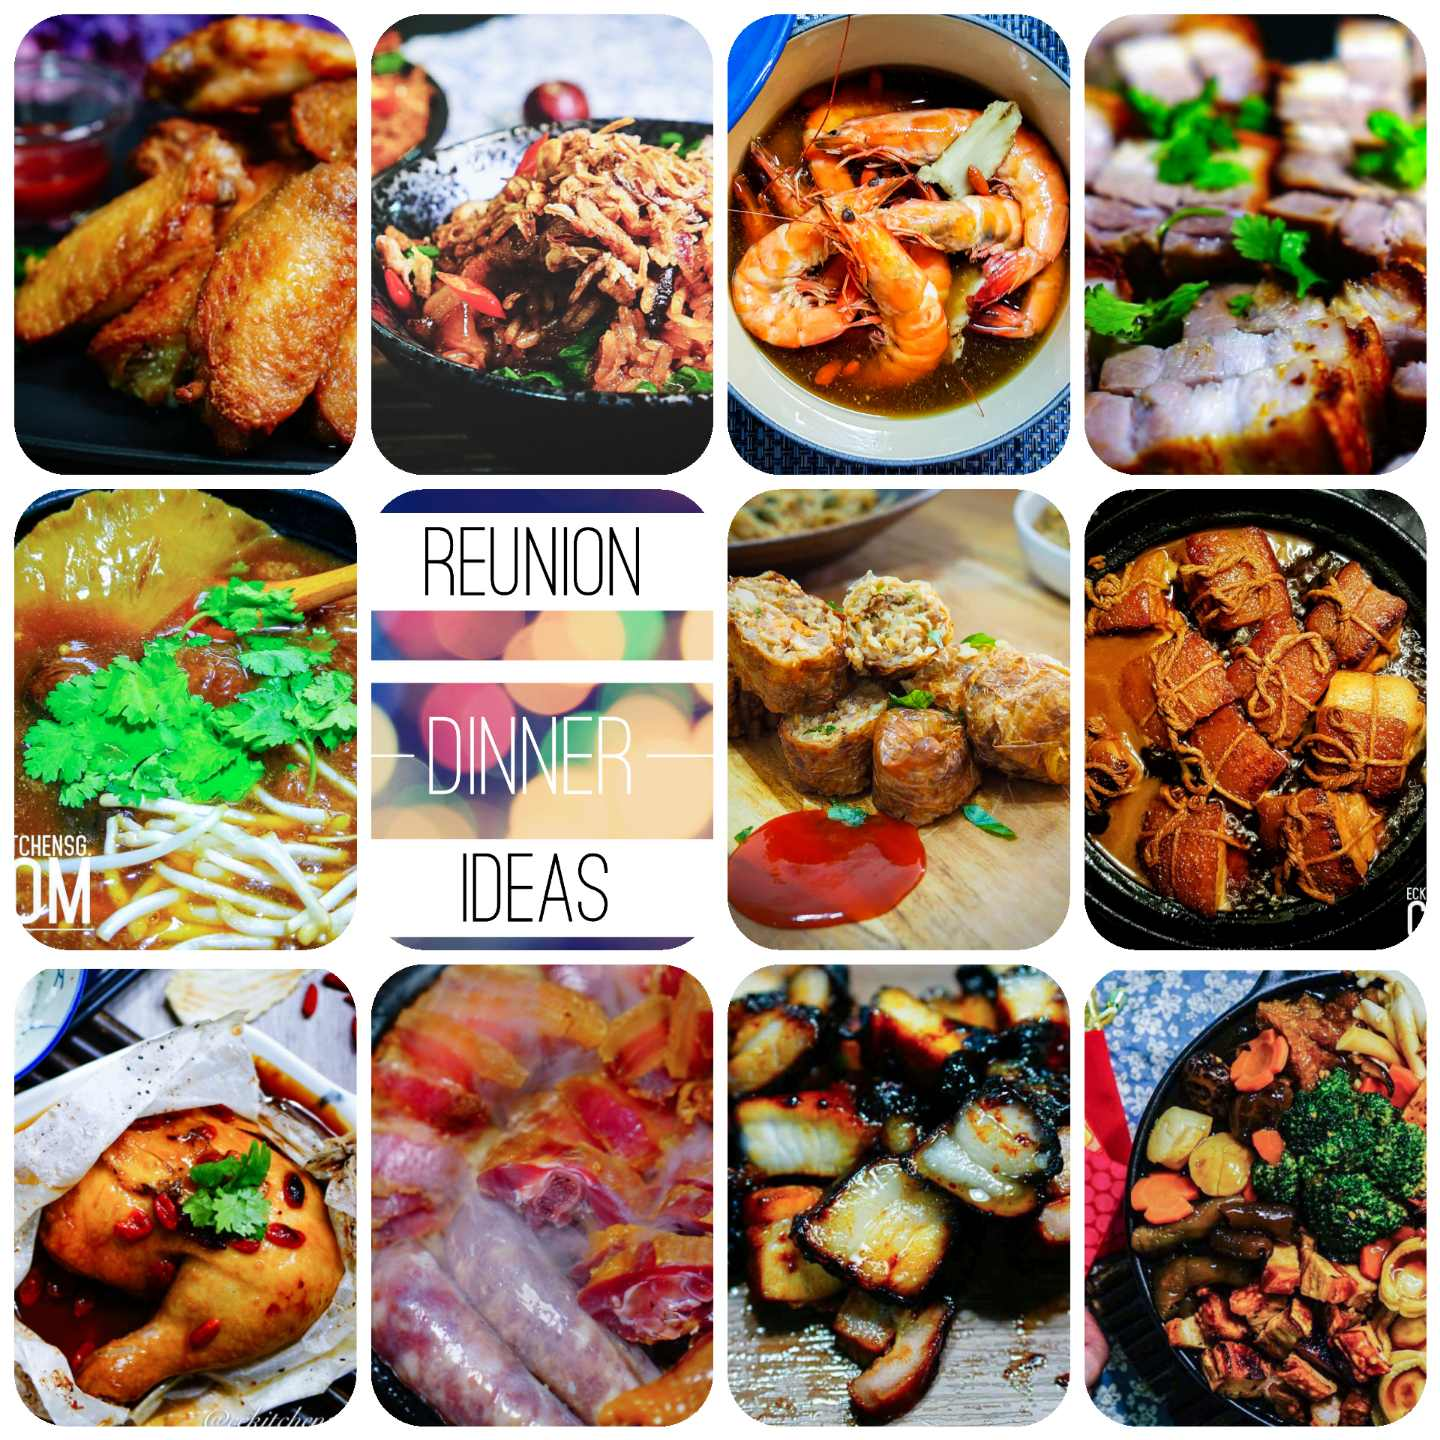 Chinese New Year Reunion Dinner Ideas